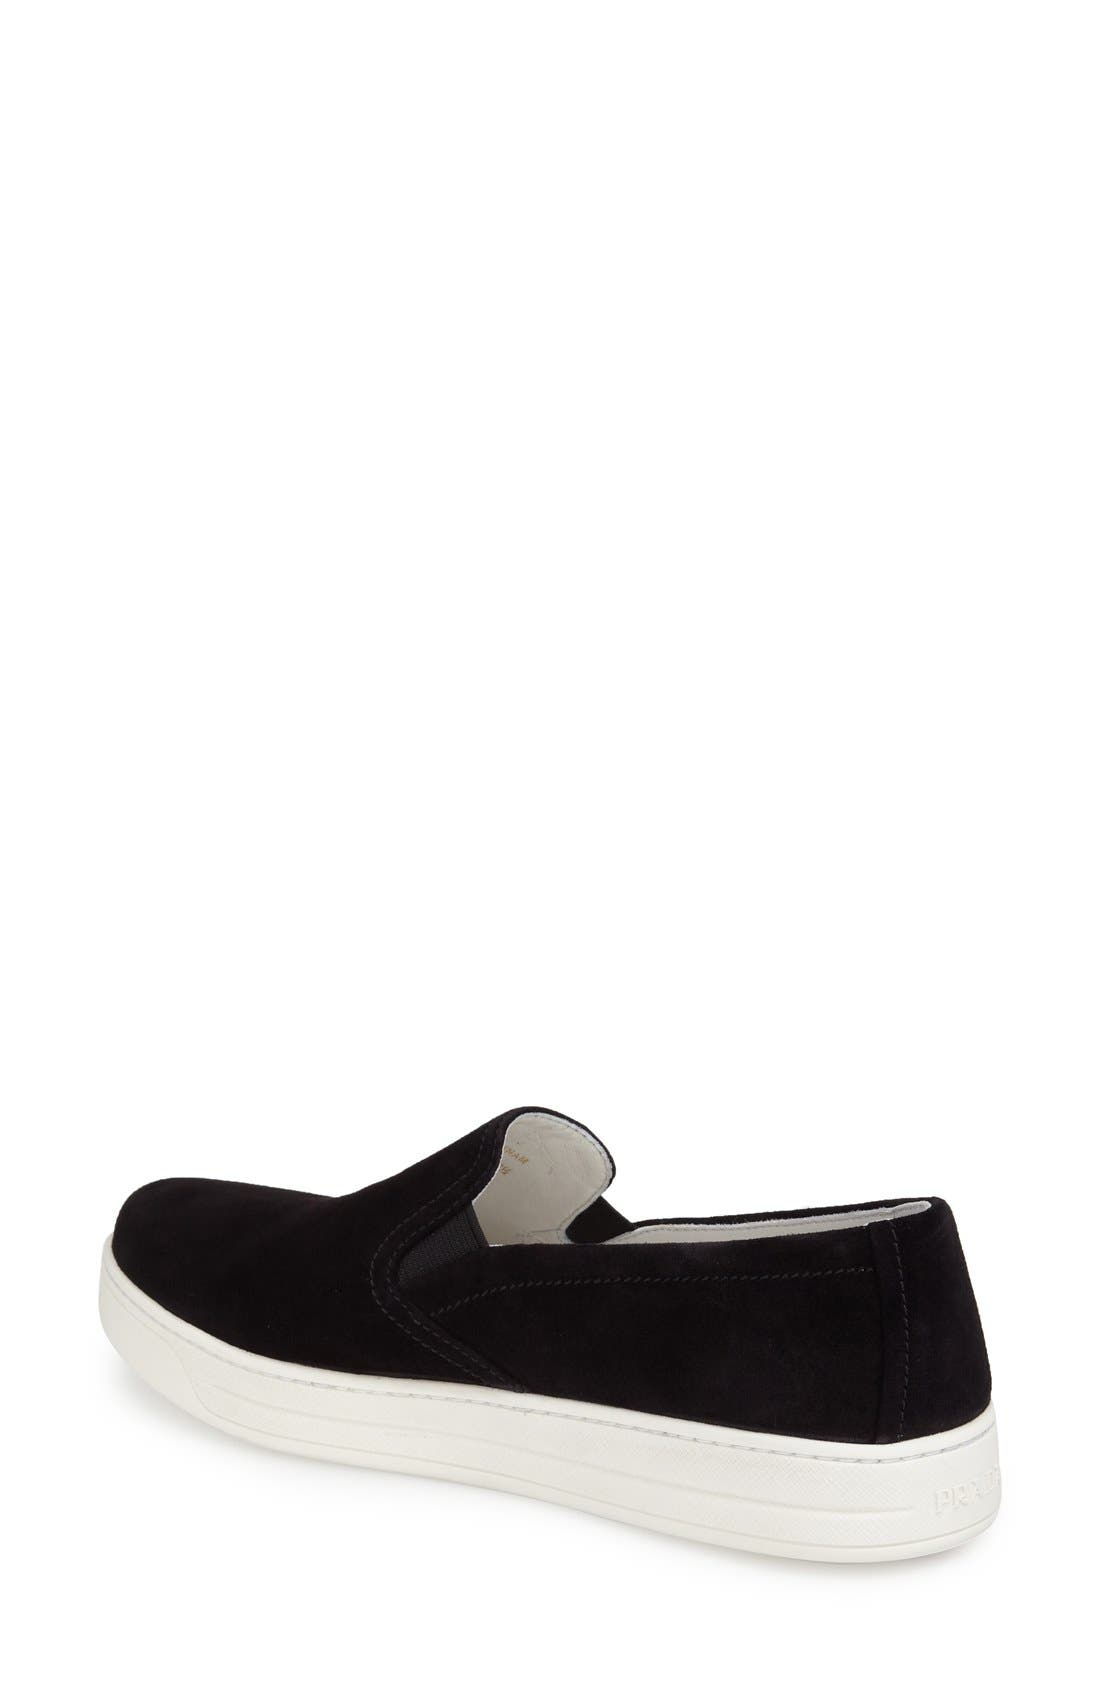 Slip-On Sneaker,                             Alternate thumbnail 46, color,